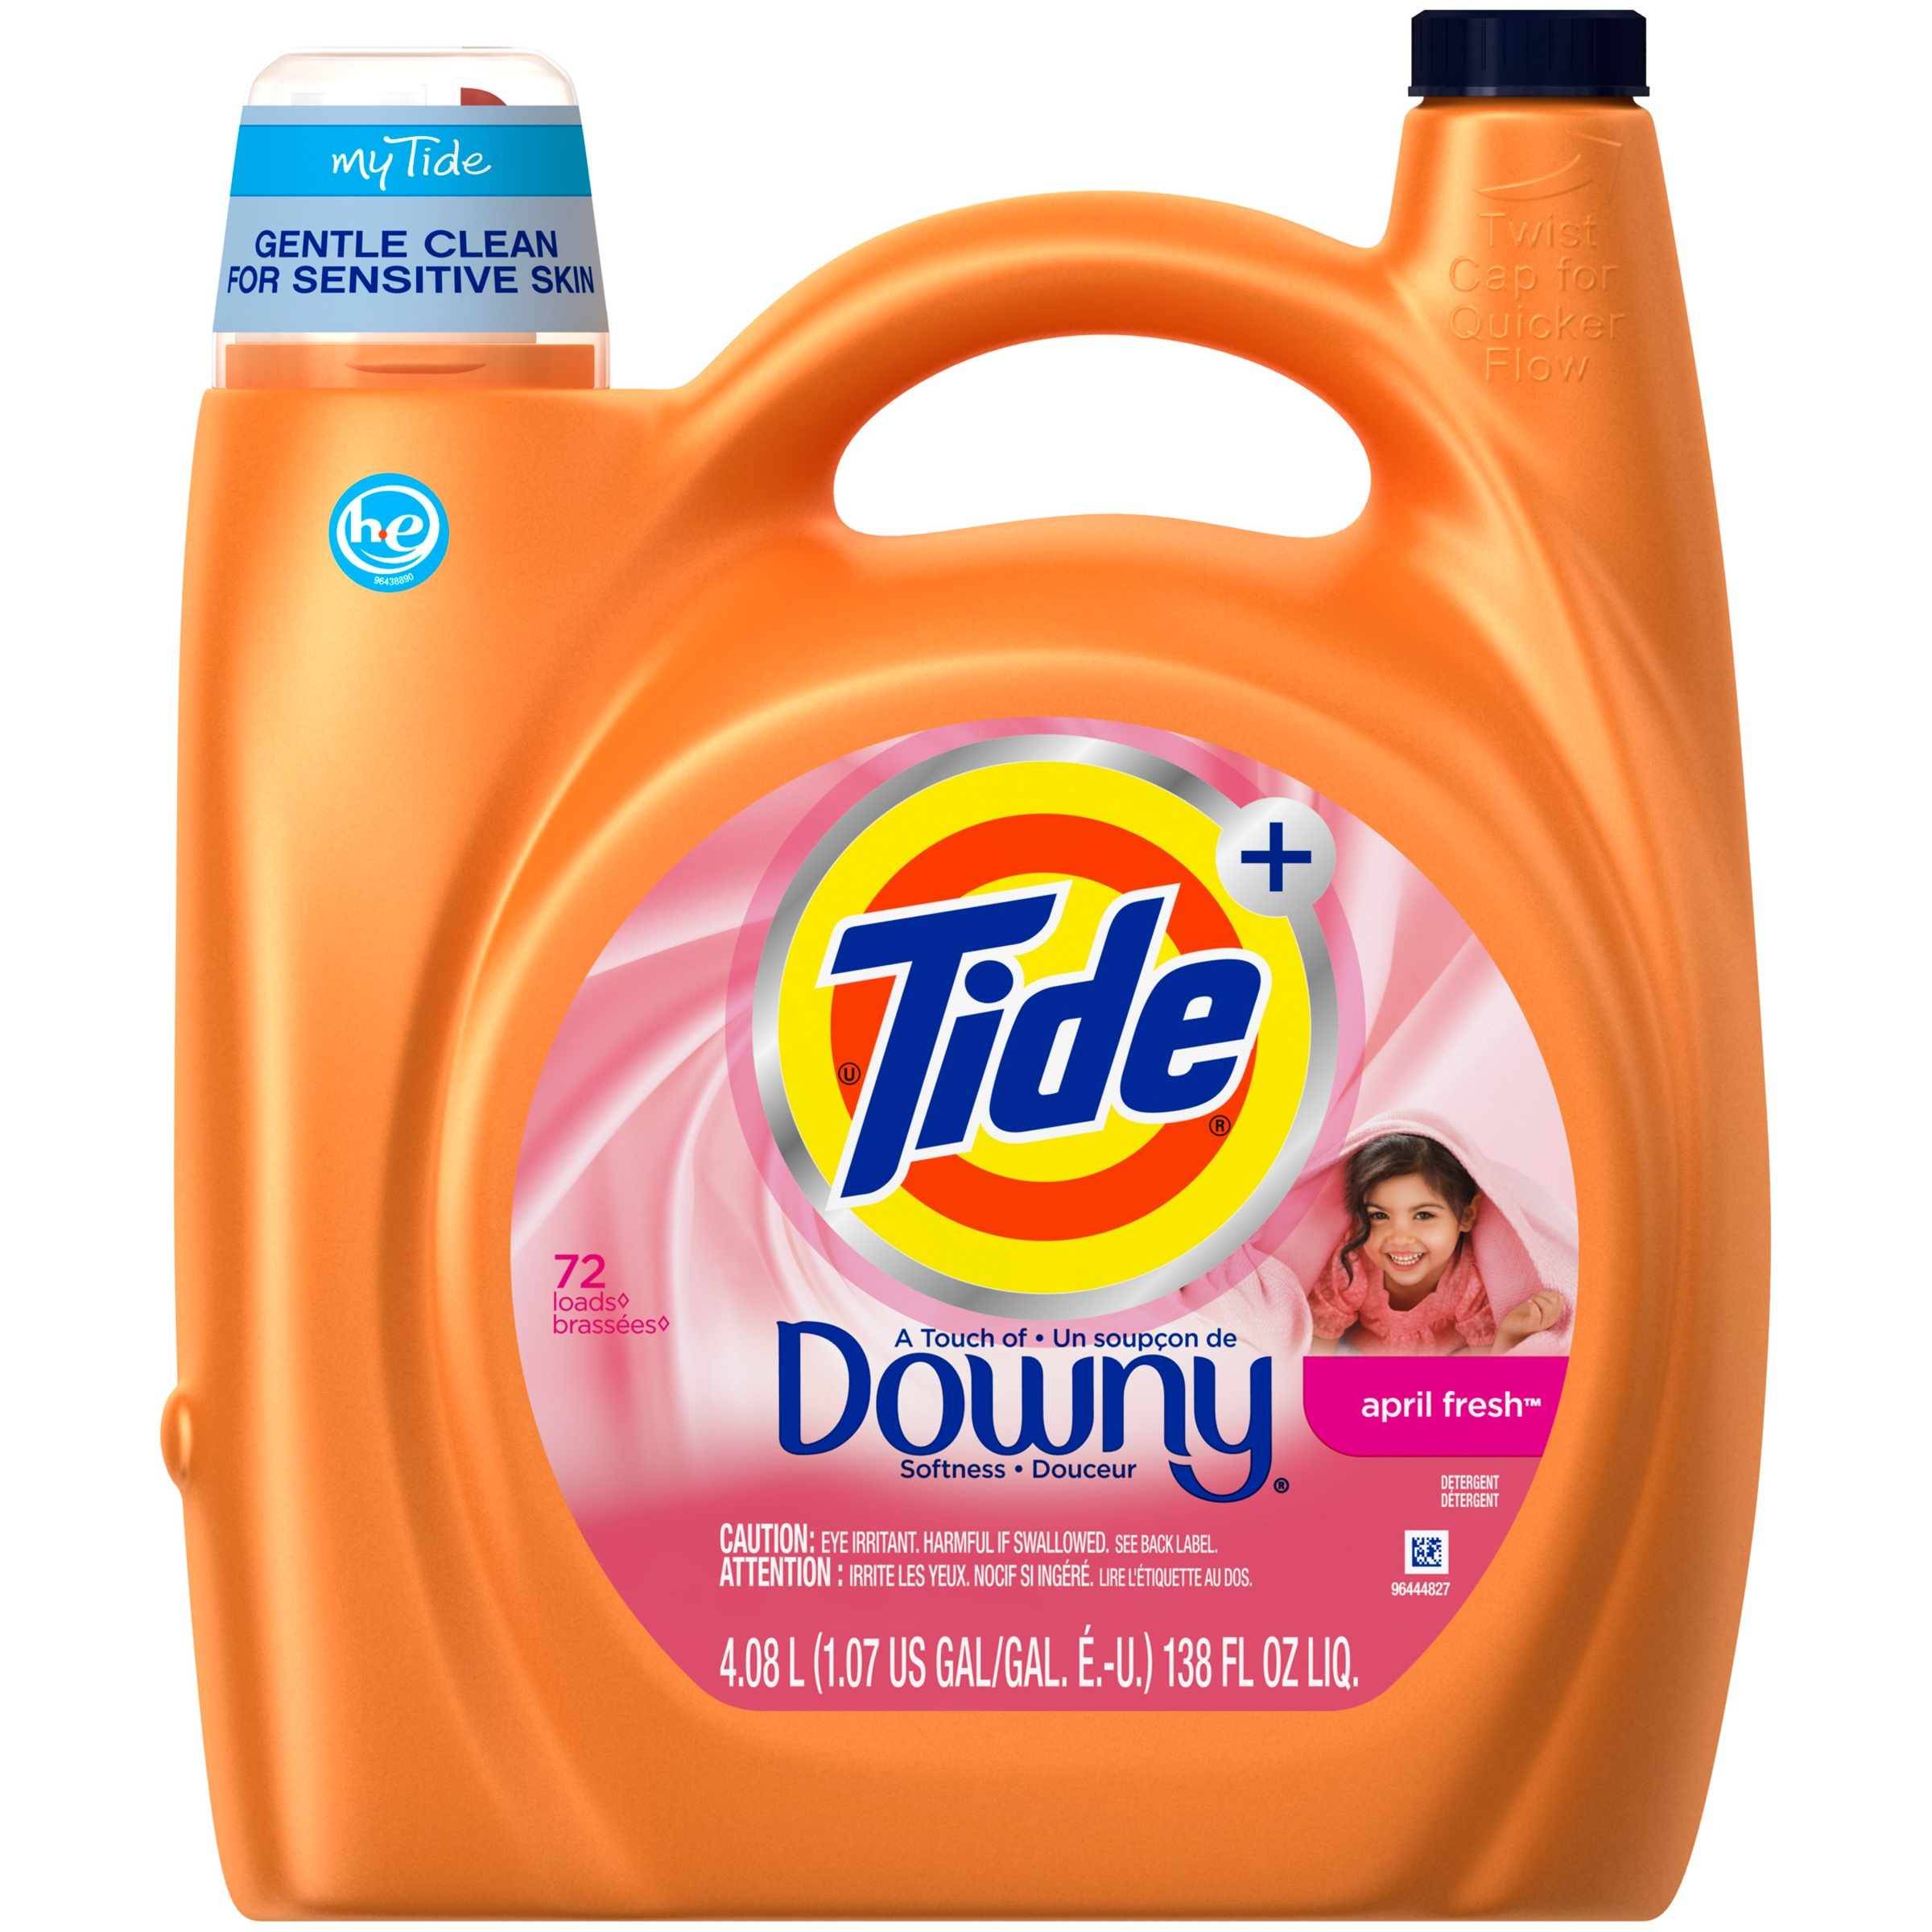 Tide + Downy April Fresh Liquid Laundry Detergent 138 fl. oz. Plastic Jug